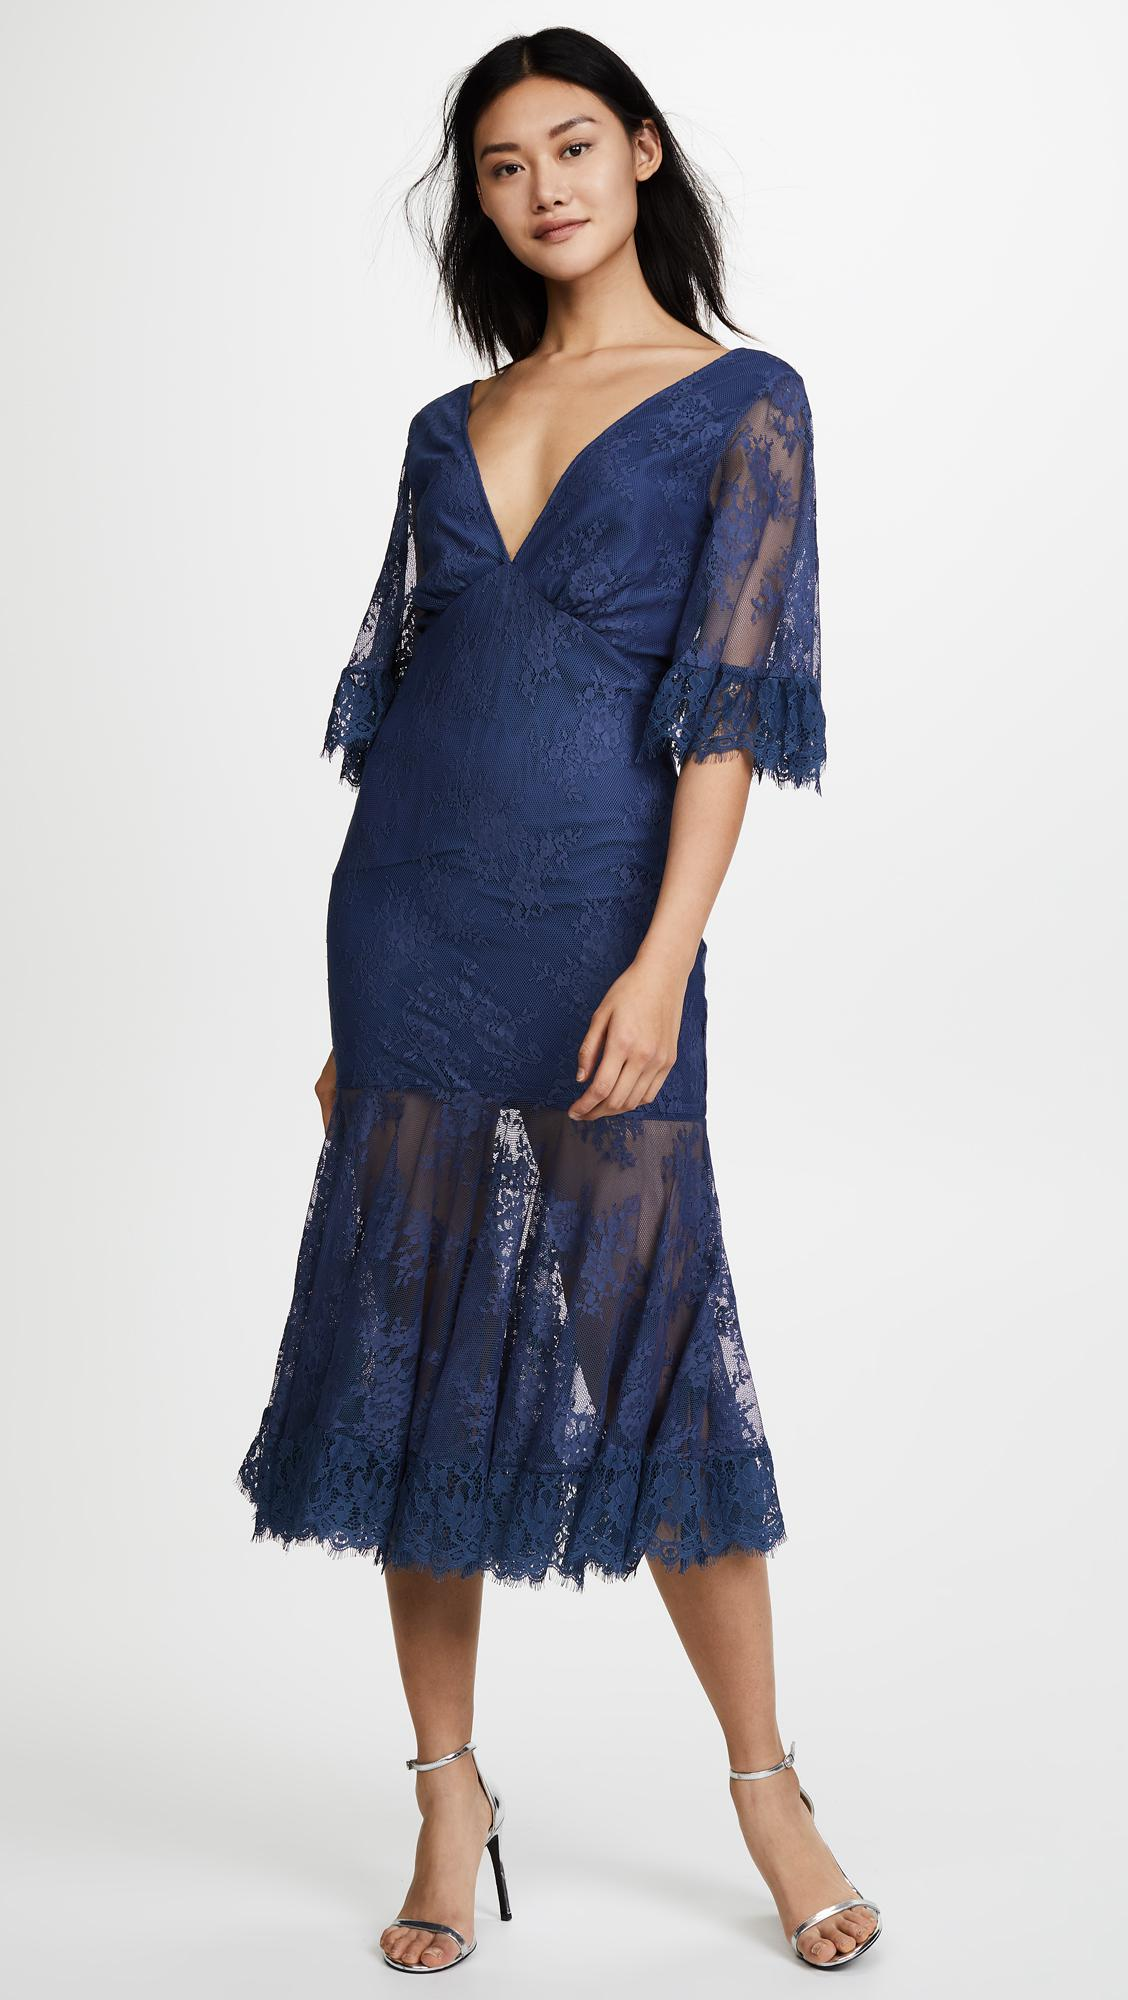 La Maison Talulah Transpire Lace Maxi Dress in Blue - Lyst 43df5d585